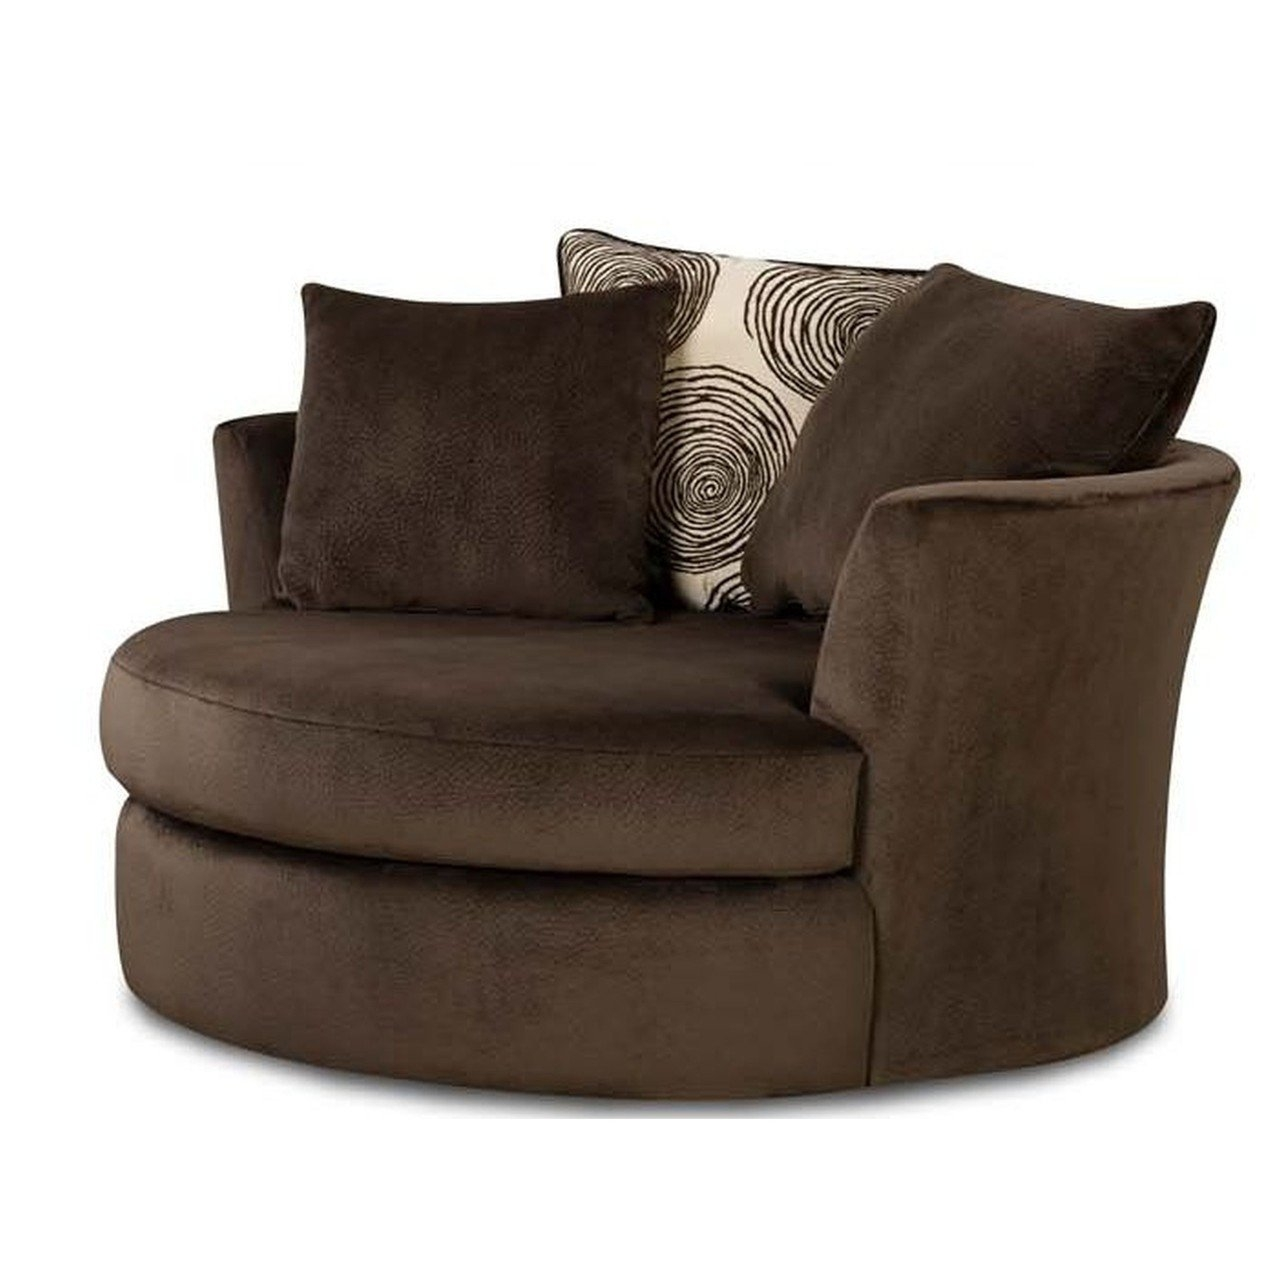 Circle Swivel Chair 15 Collection Of Round Sofa Chair Sofa Ideas